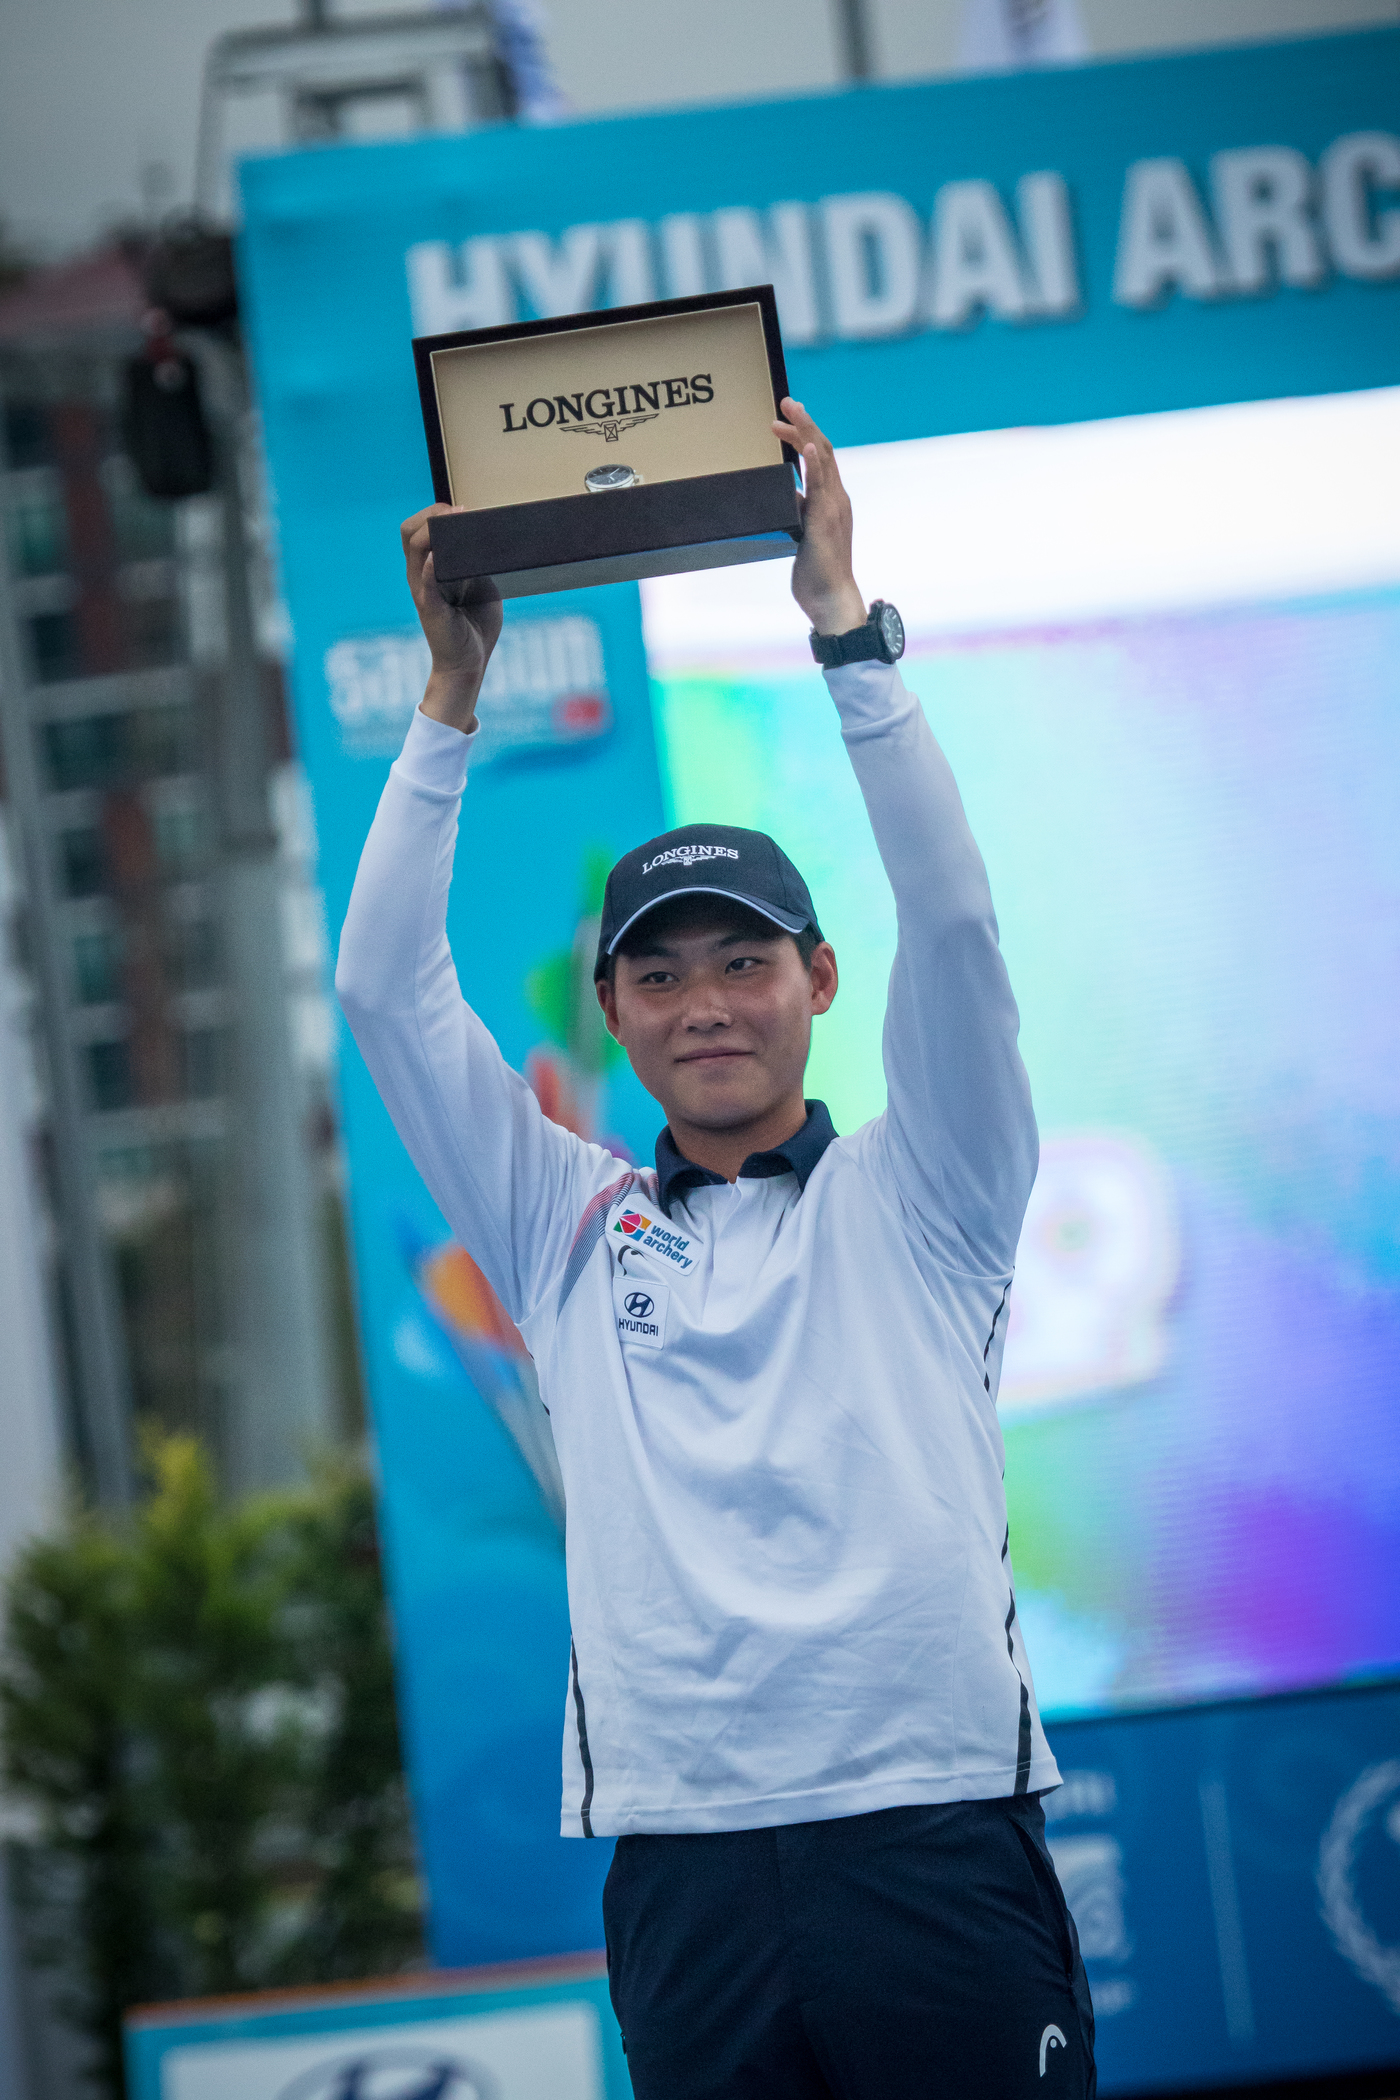 Longines Archery Event: The Longines Prize for Precision: the recognition of excellence  3